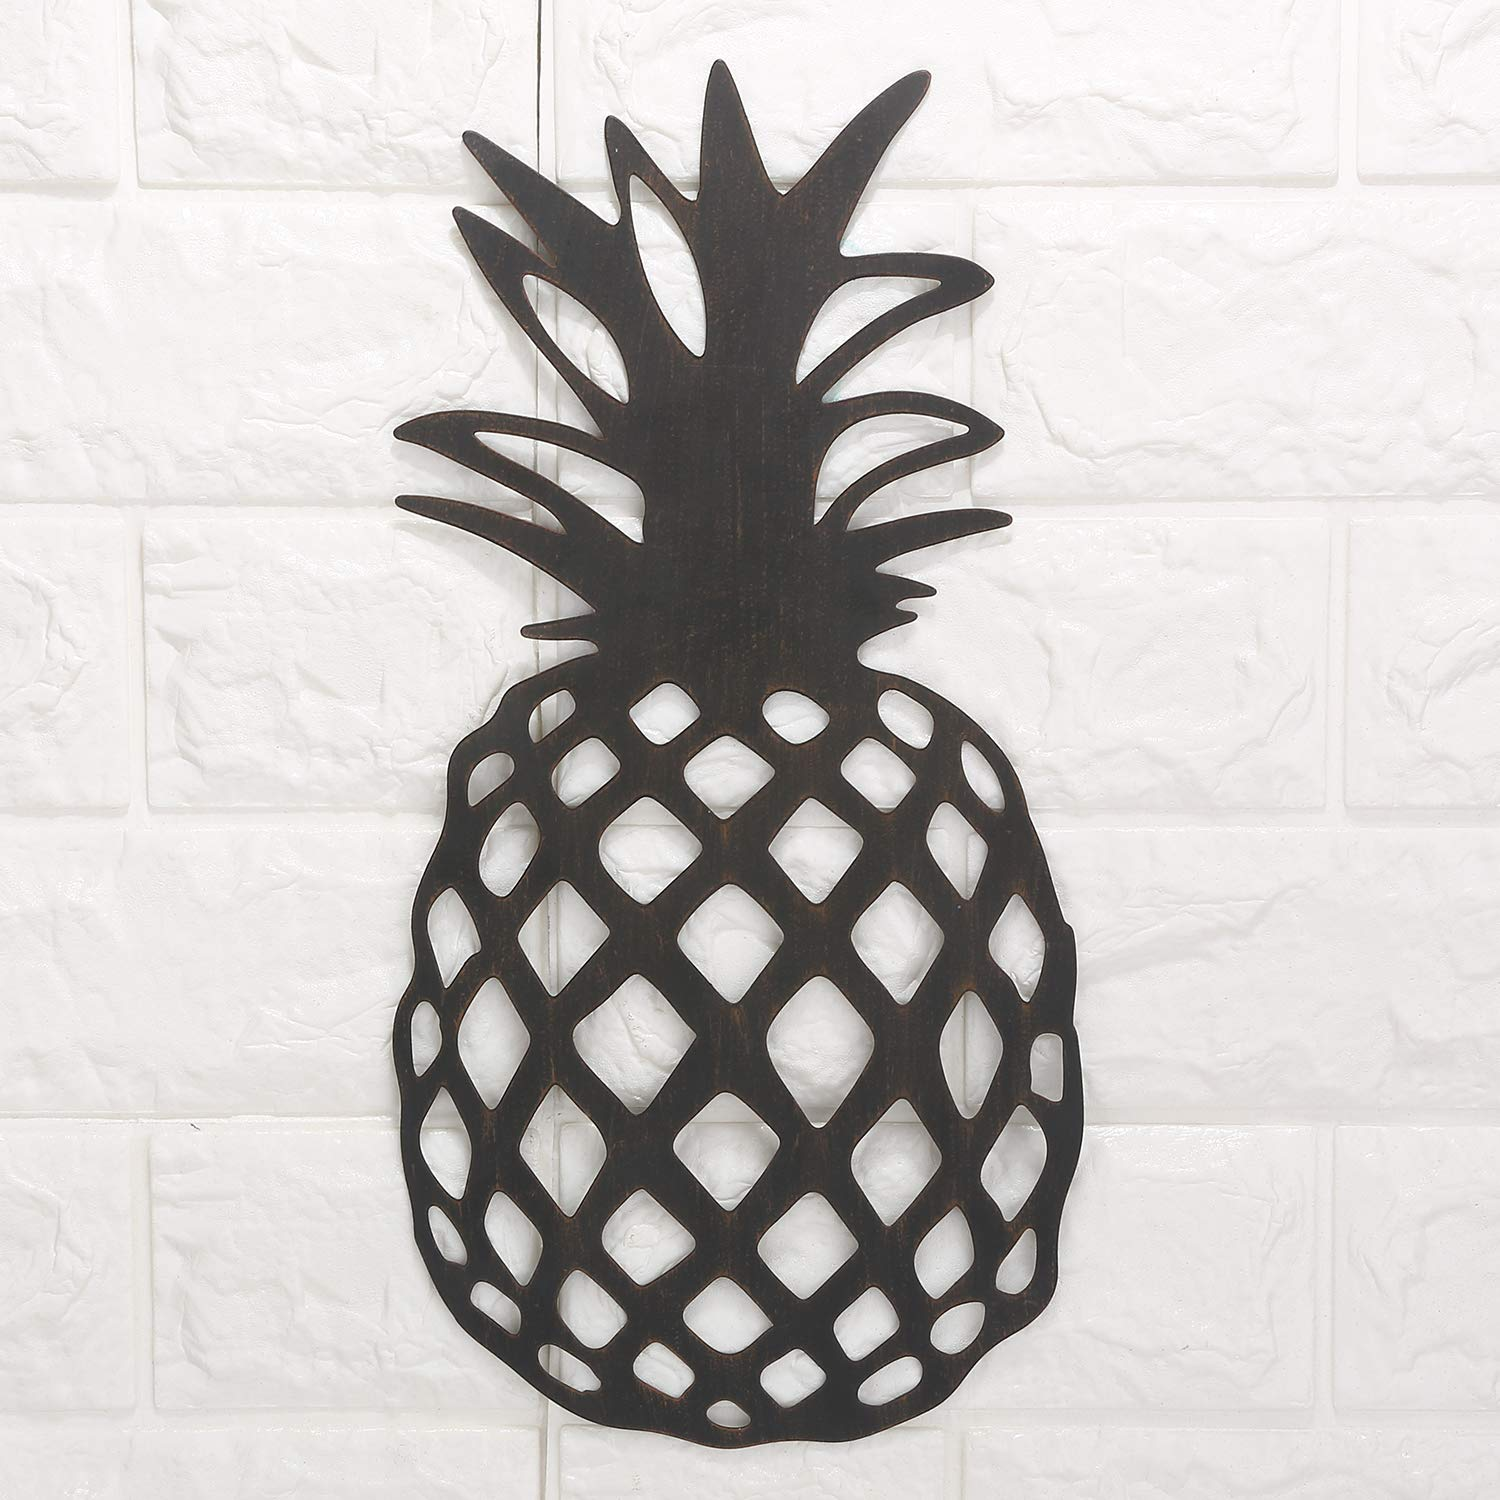 Pineapple Rustic Metal Wall Art Decor-Tropical Wall Sculpture for Kitchen, Bedroom, Living Room by Scwhousi